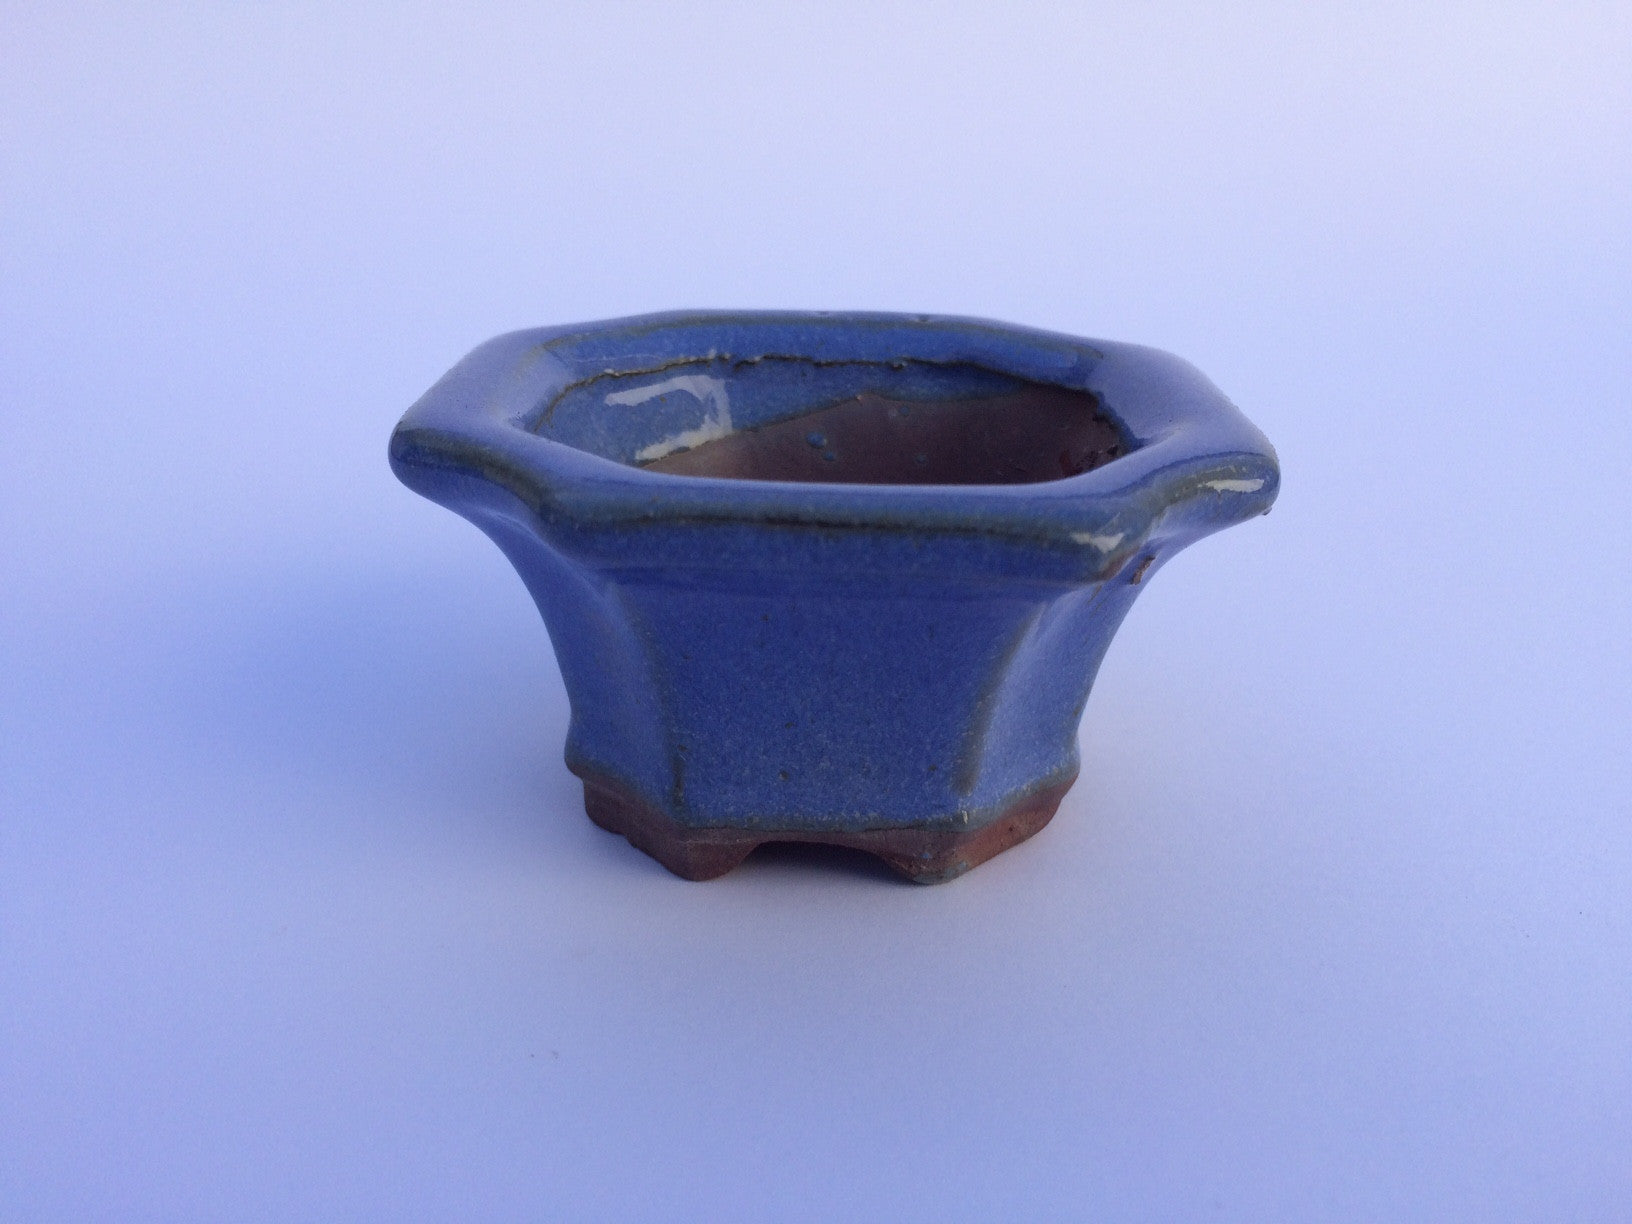 7cm x 7cm x 4cm Glazed Bonsai Container - Lavender